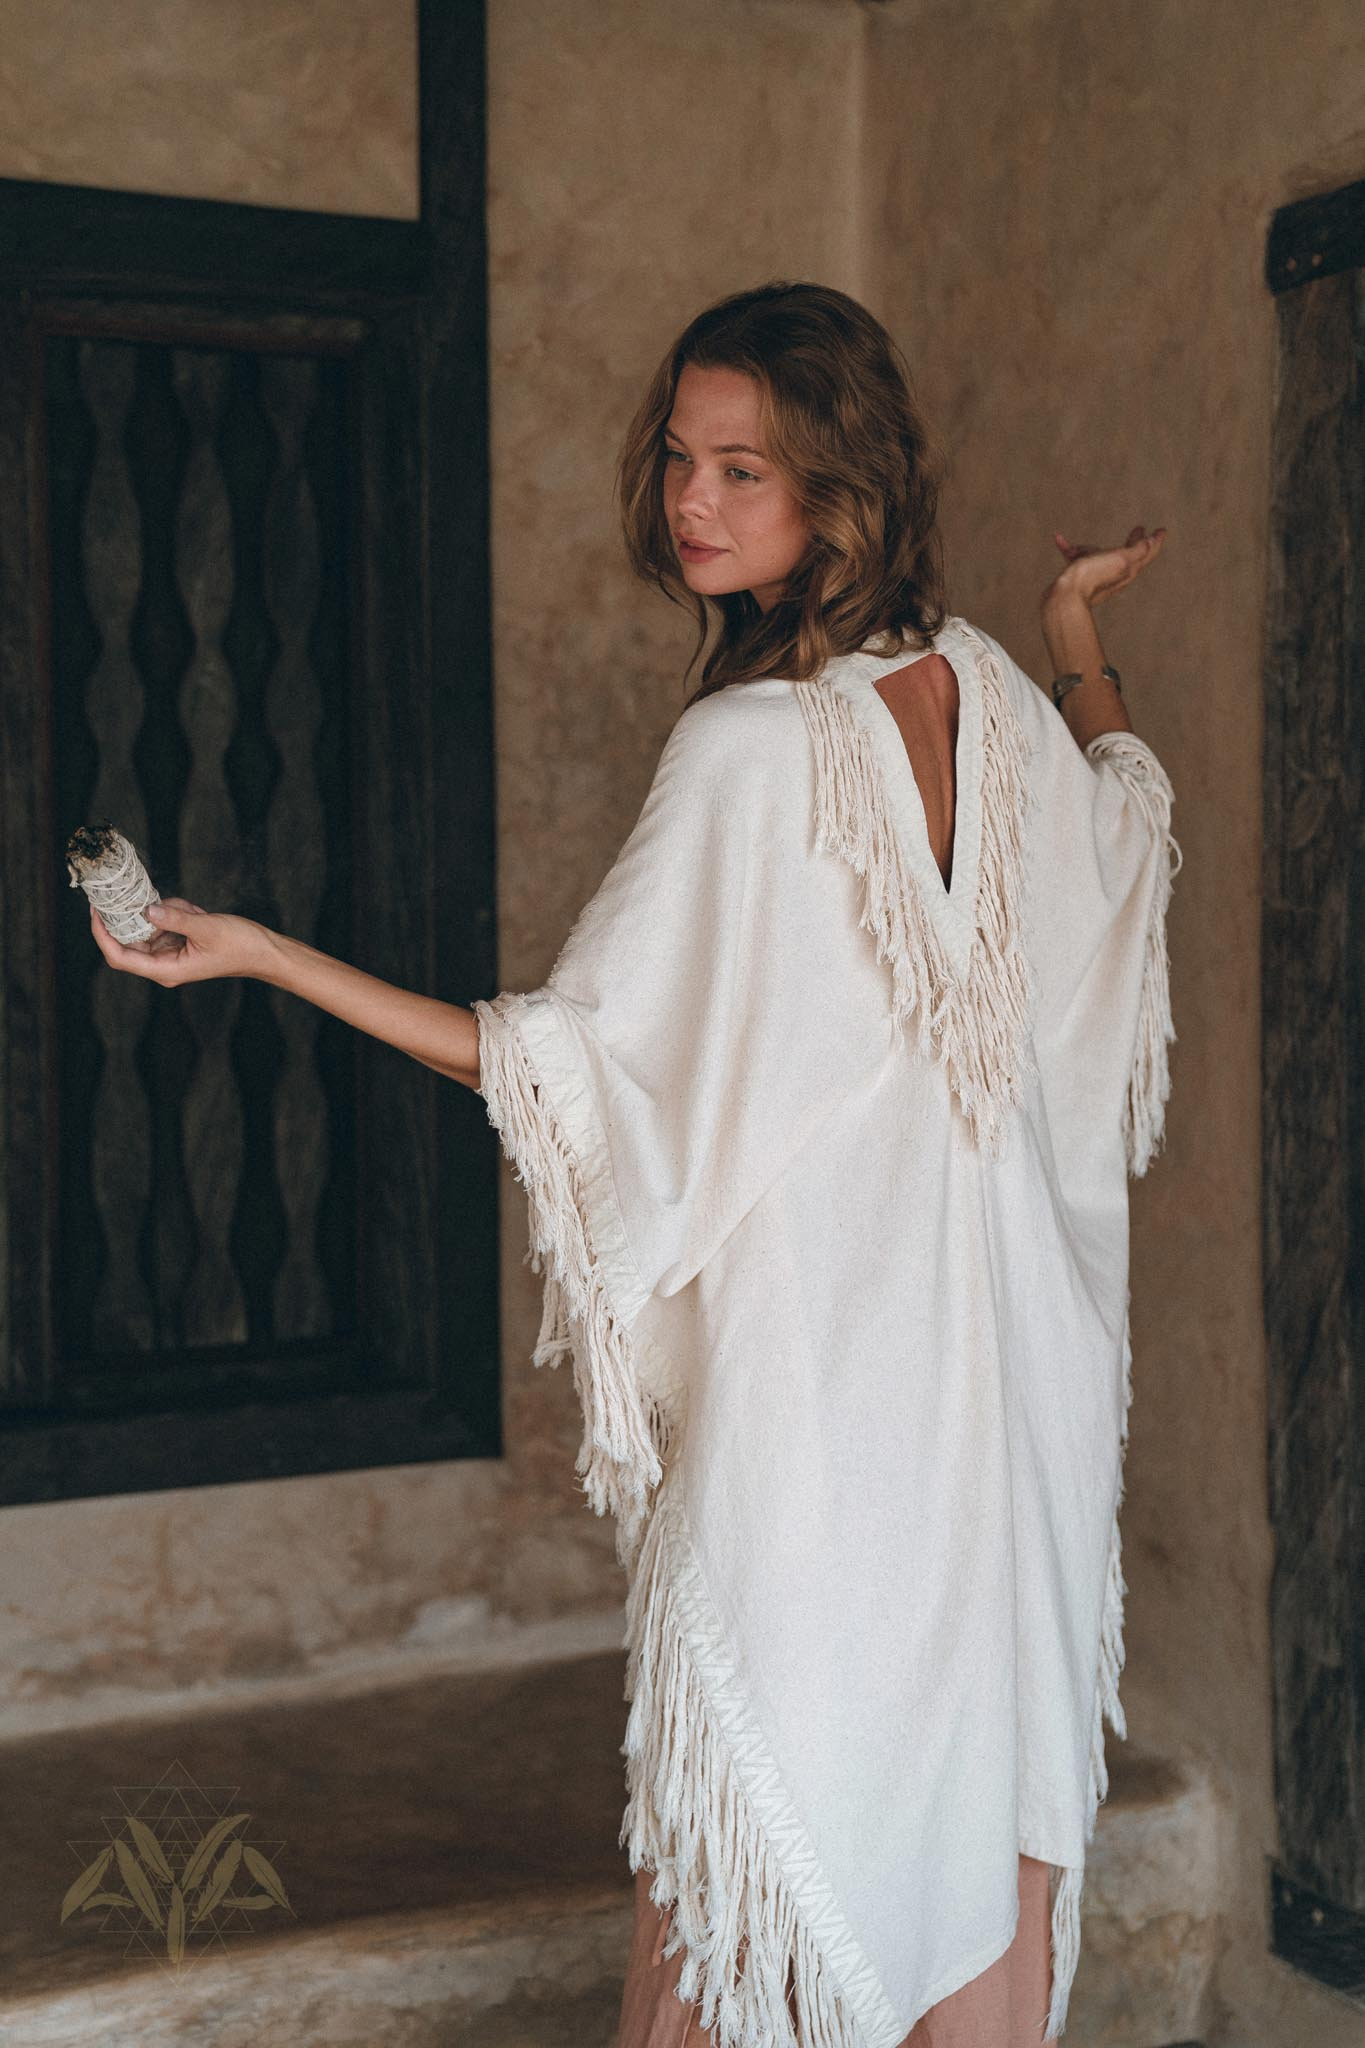 Off-White Cardigan • Boho Poncho Women Fringed • Wide Sleeve Women Cardigan - AYA Sacred Wear